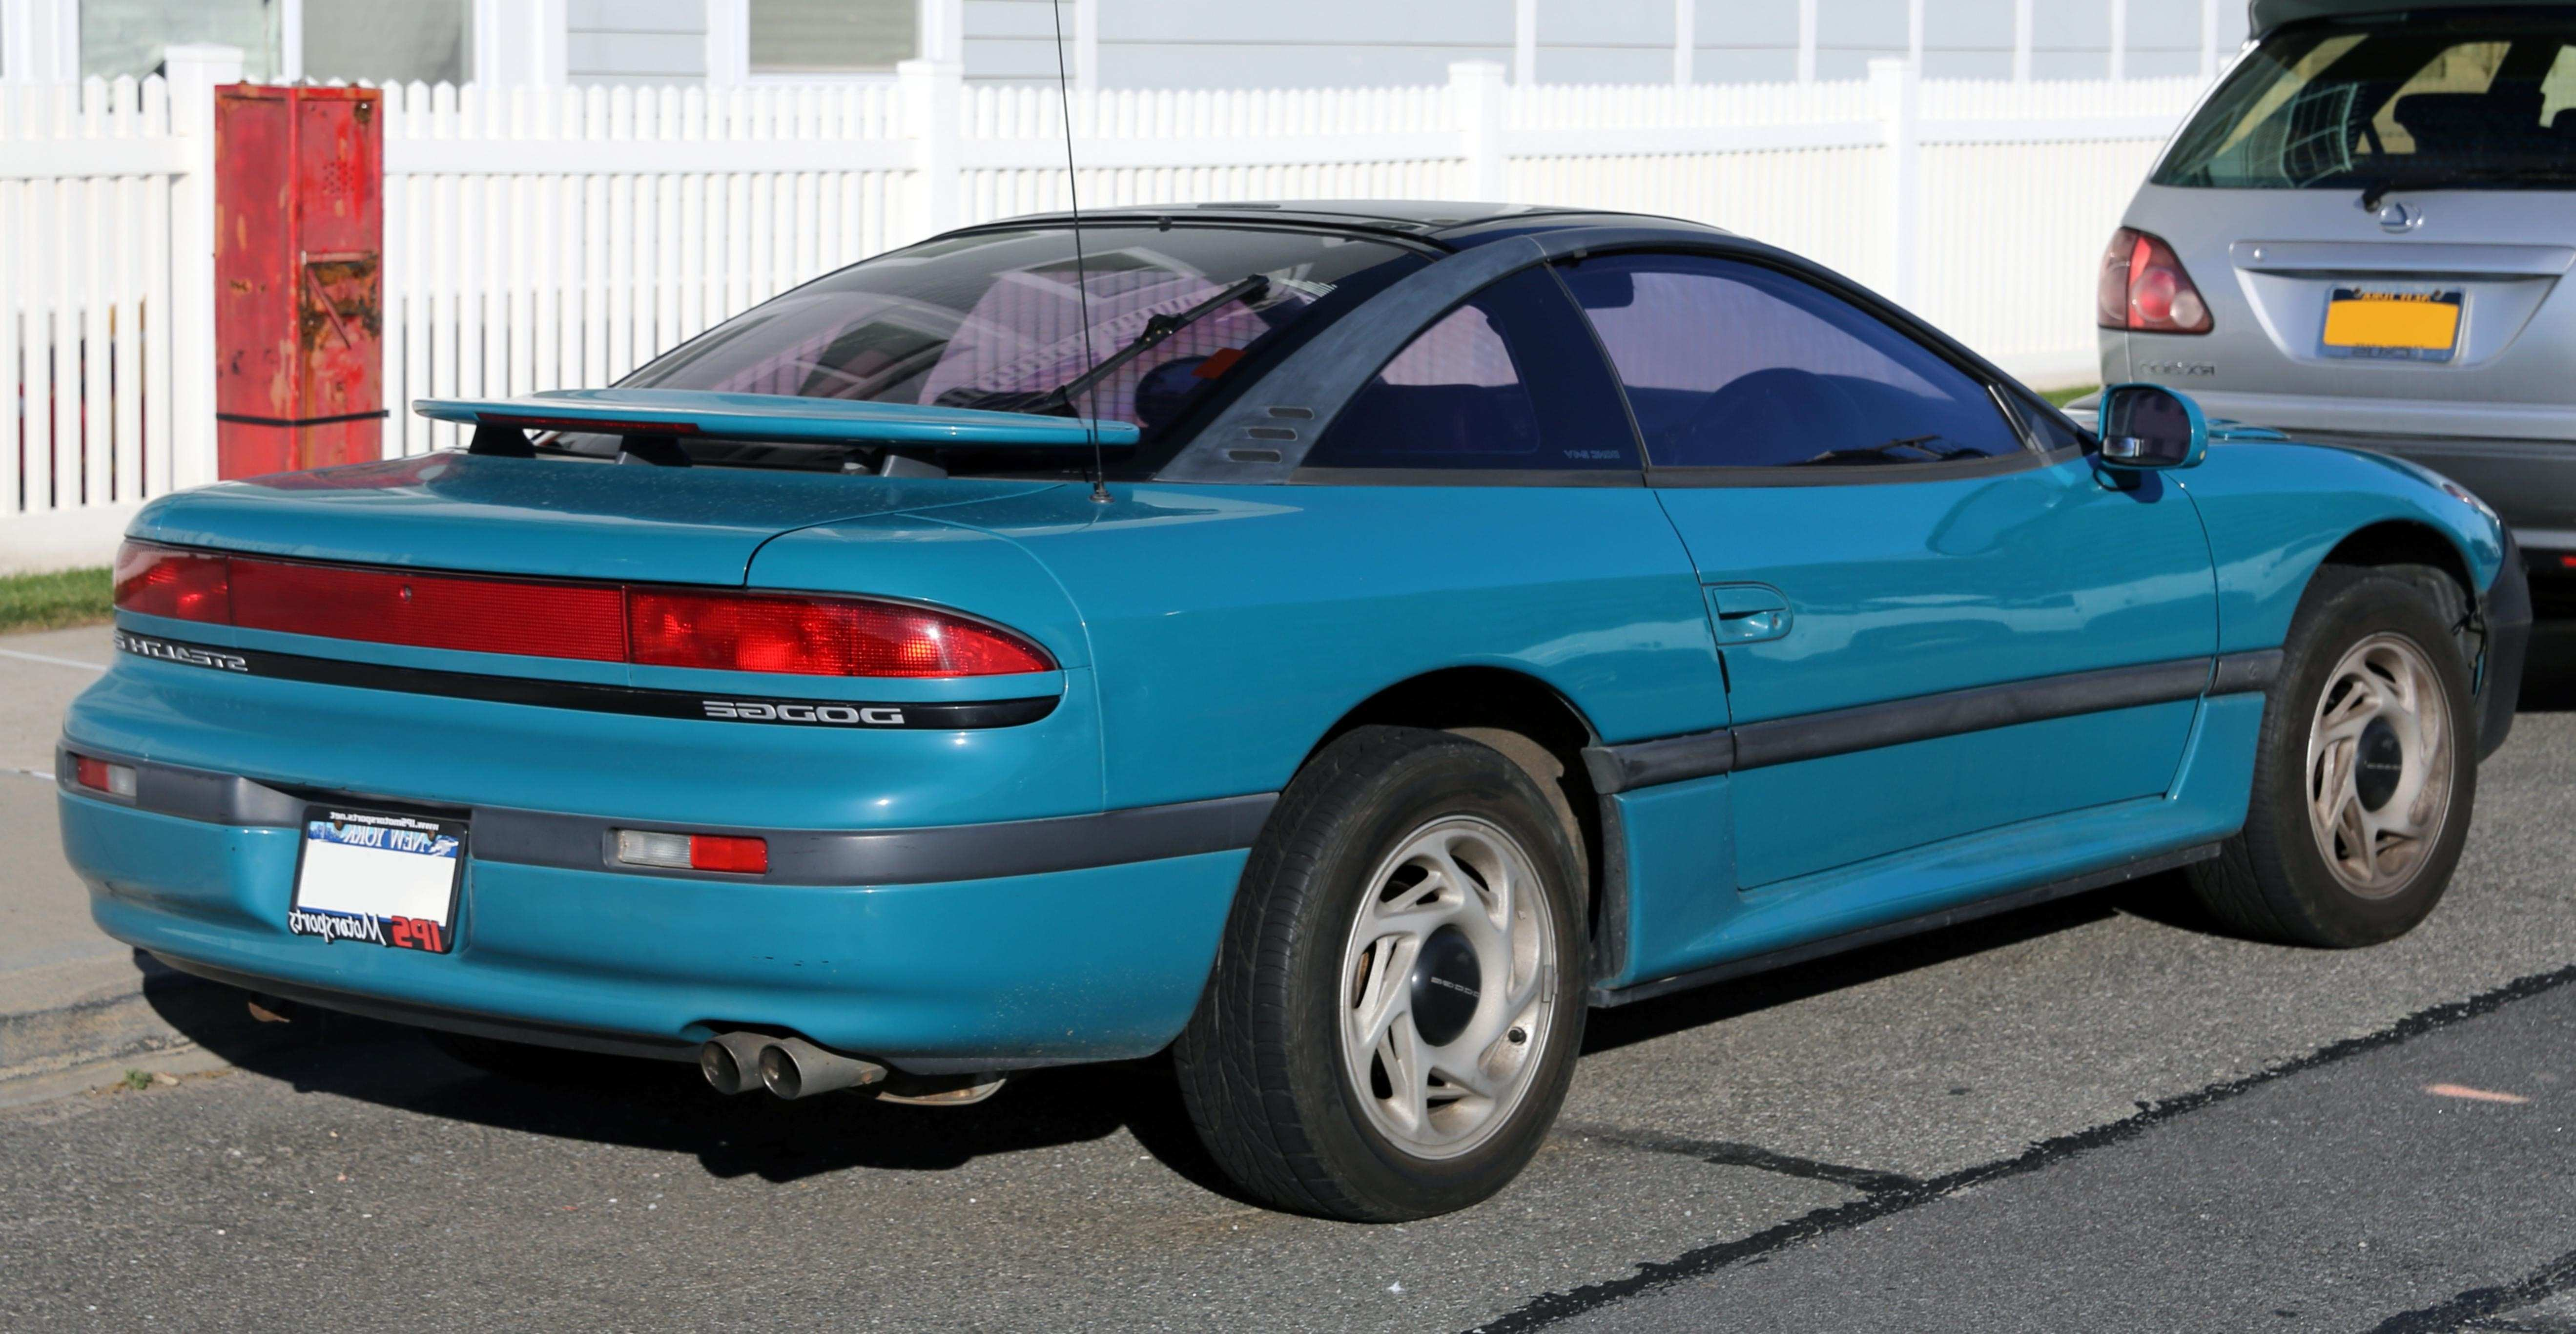 53 All New Dodge Stealth 2020 Redesign